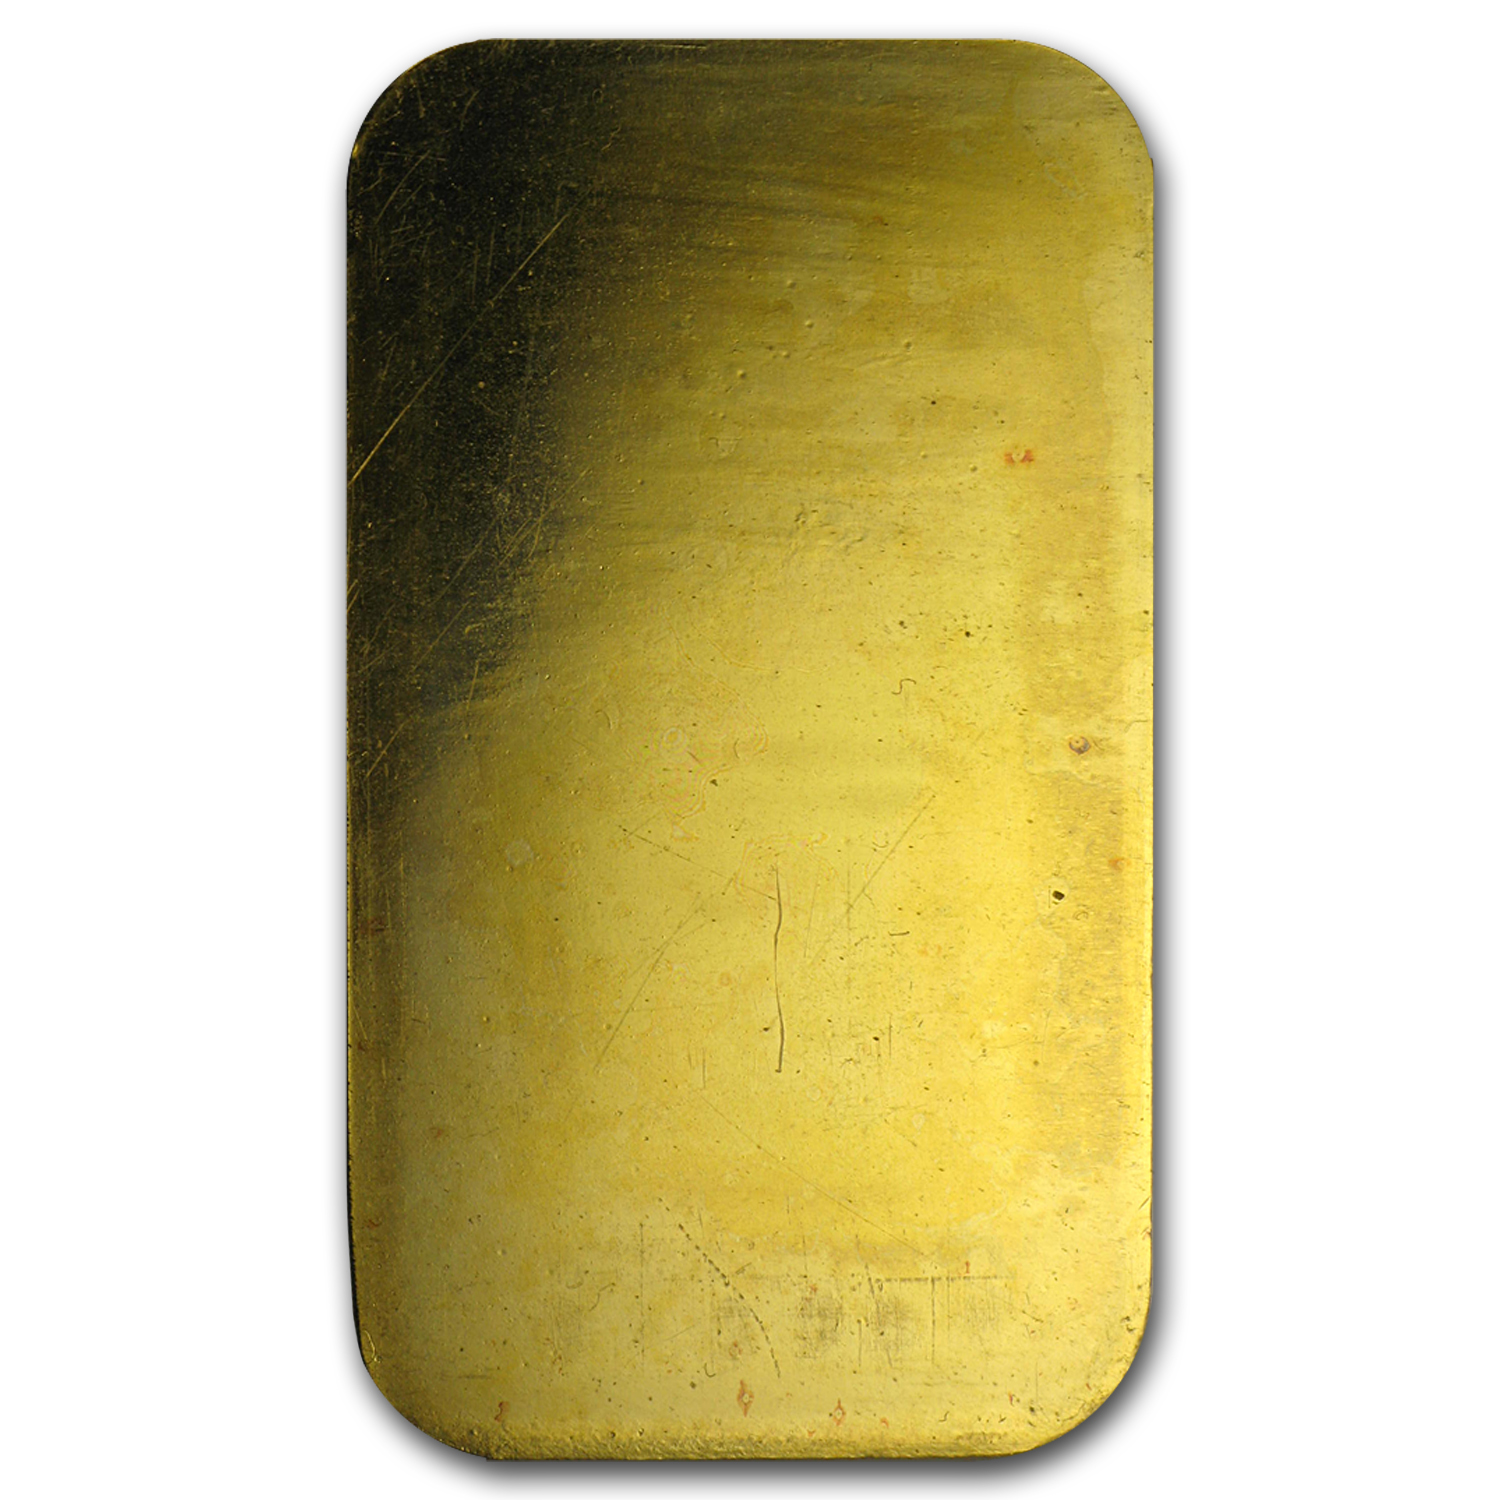 1 oz Gold Bar - Engelhard (Maple Leaf)